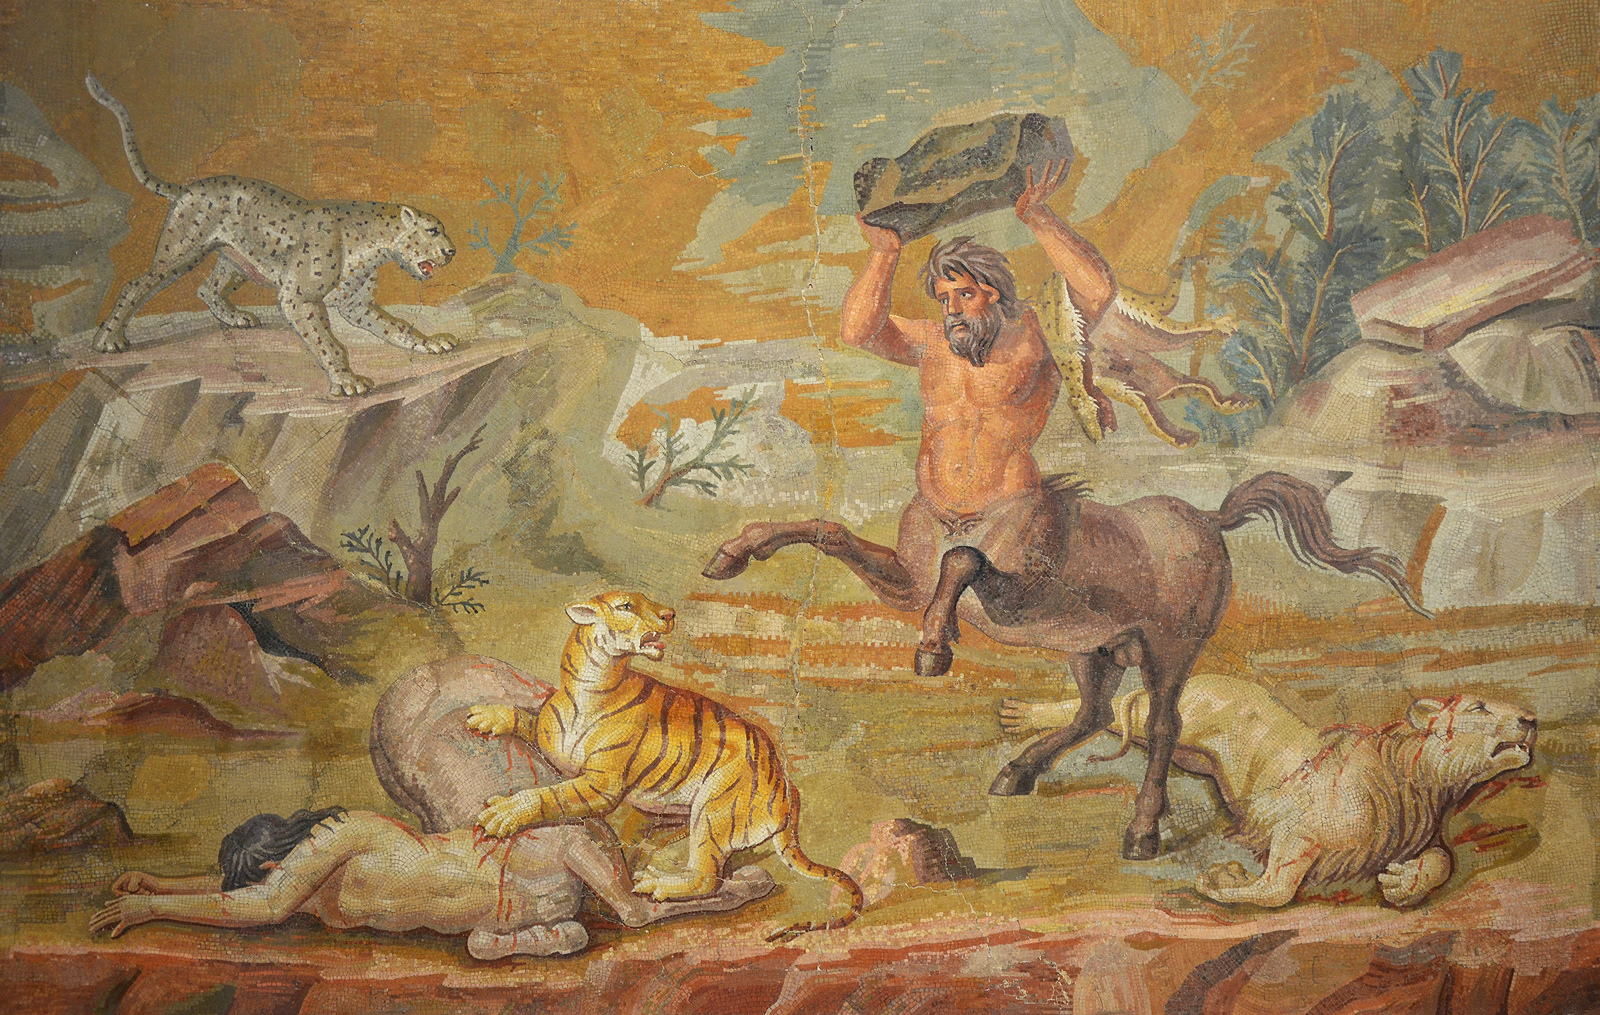 fresco vs mosaic Minoan art in ancient greece,  minoan painters utilized the wet type of fresco painting in which pigments were applied directly to wet plaster, binding.